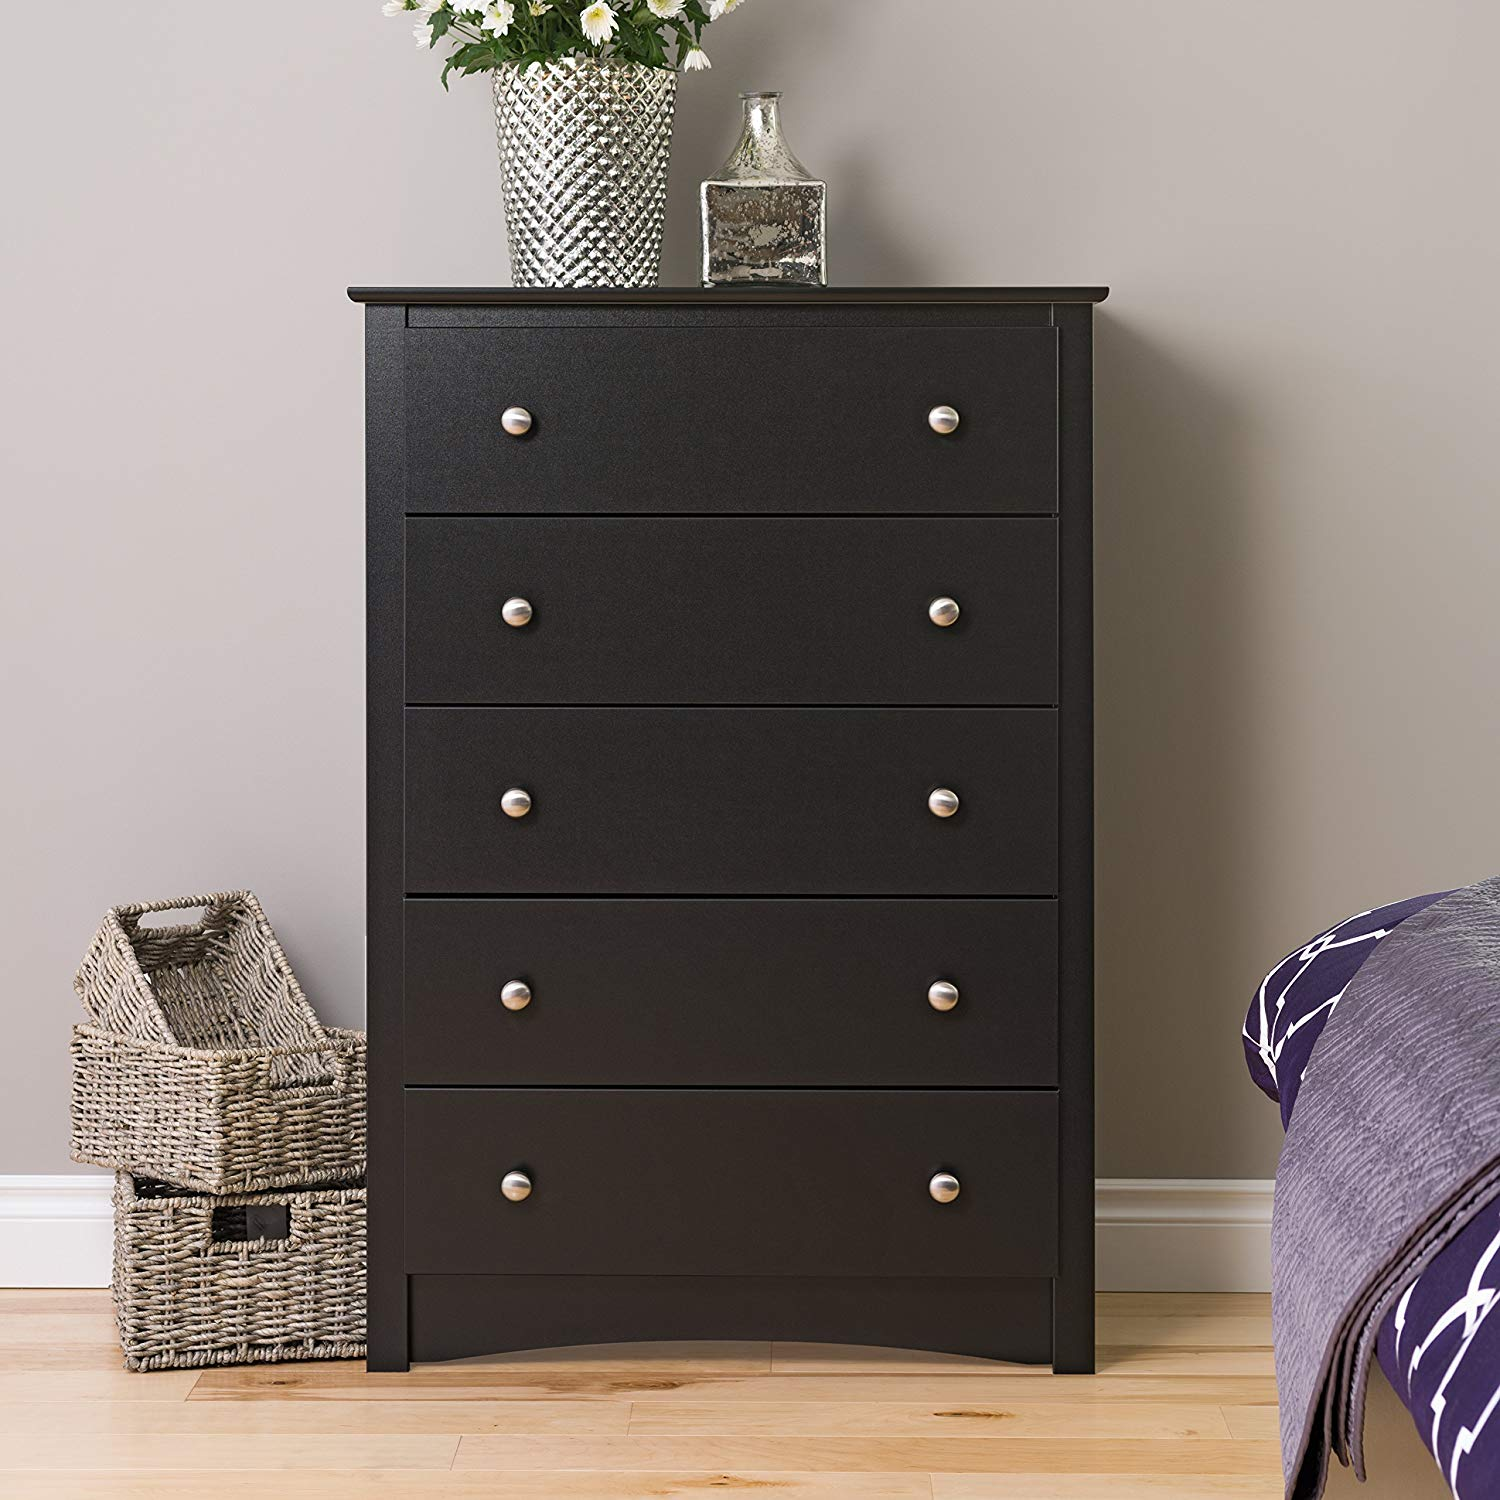 Black Sonoma 5 Drawer Bedroom Chest Review 2